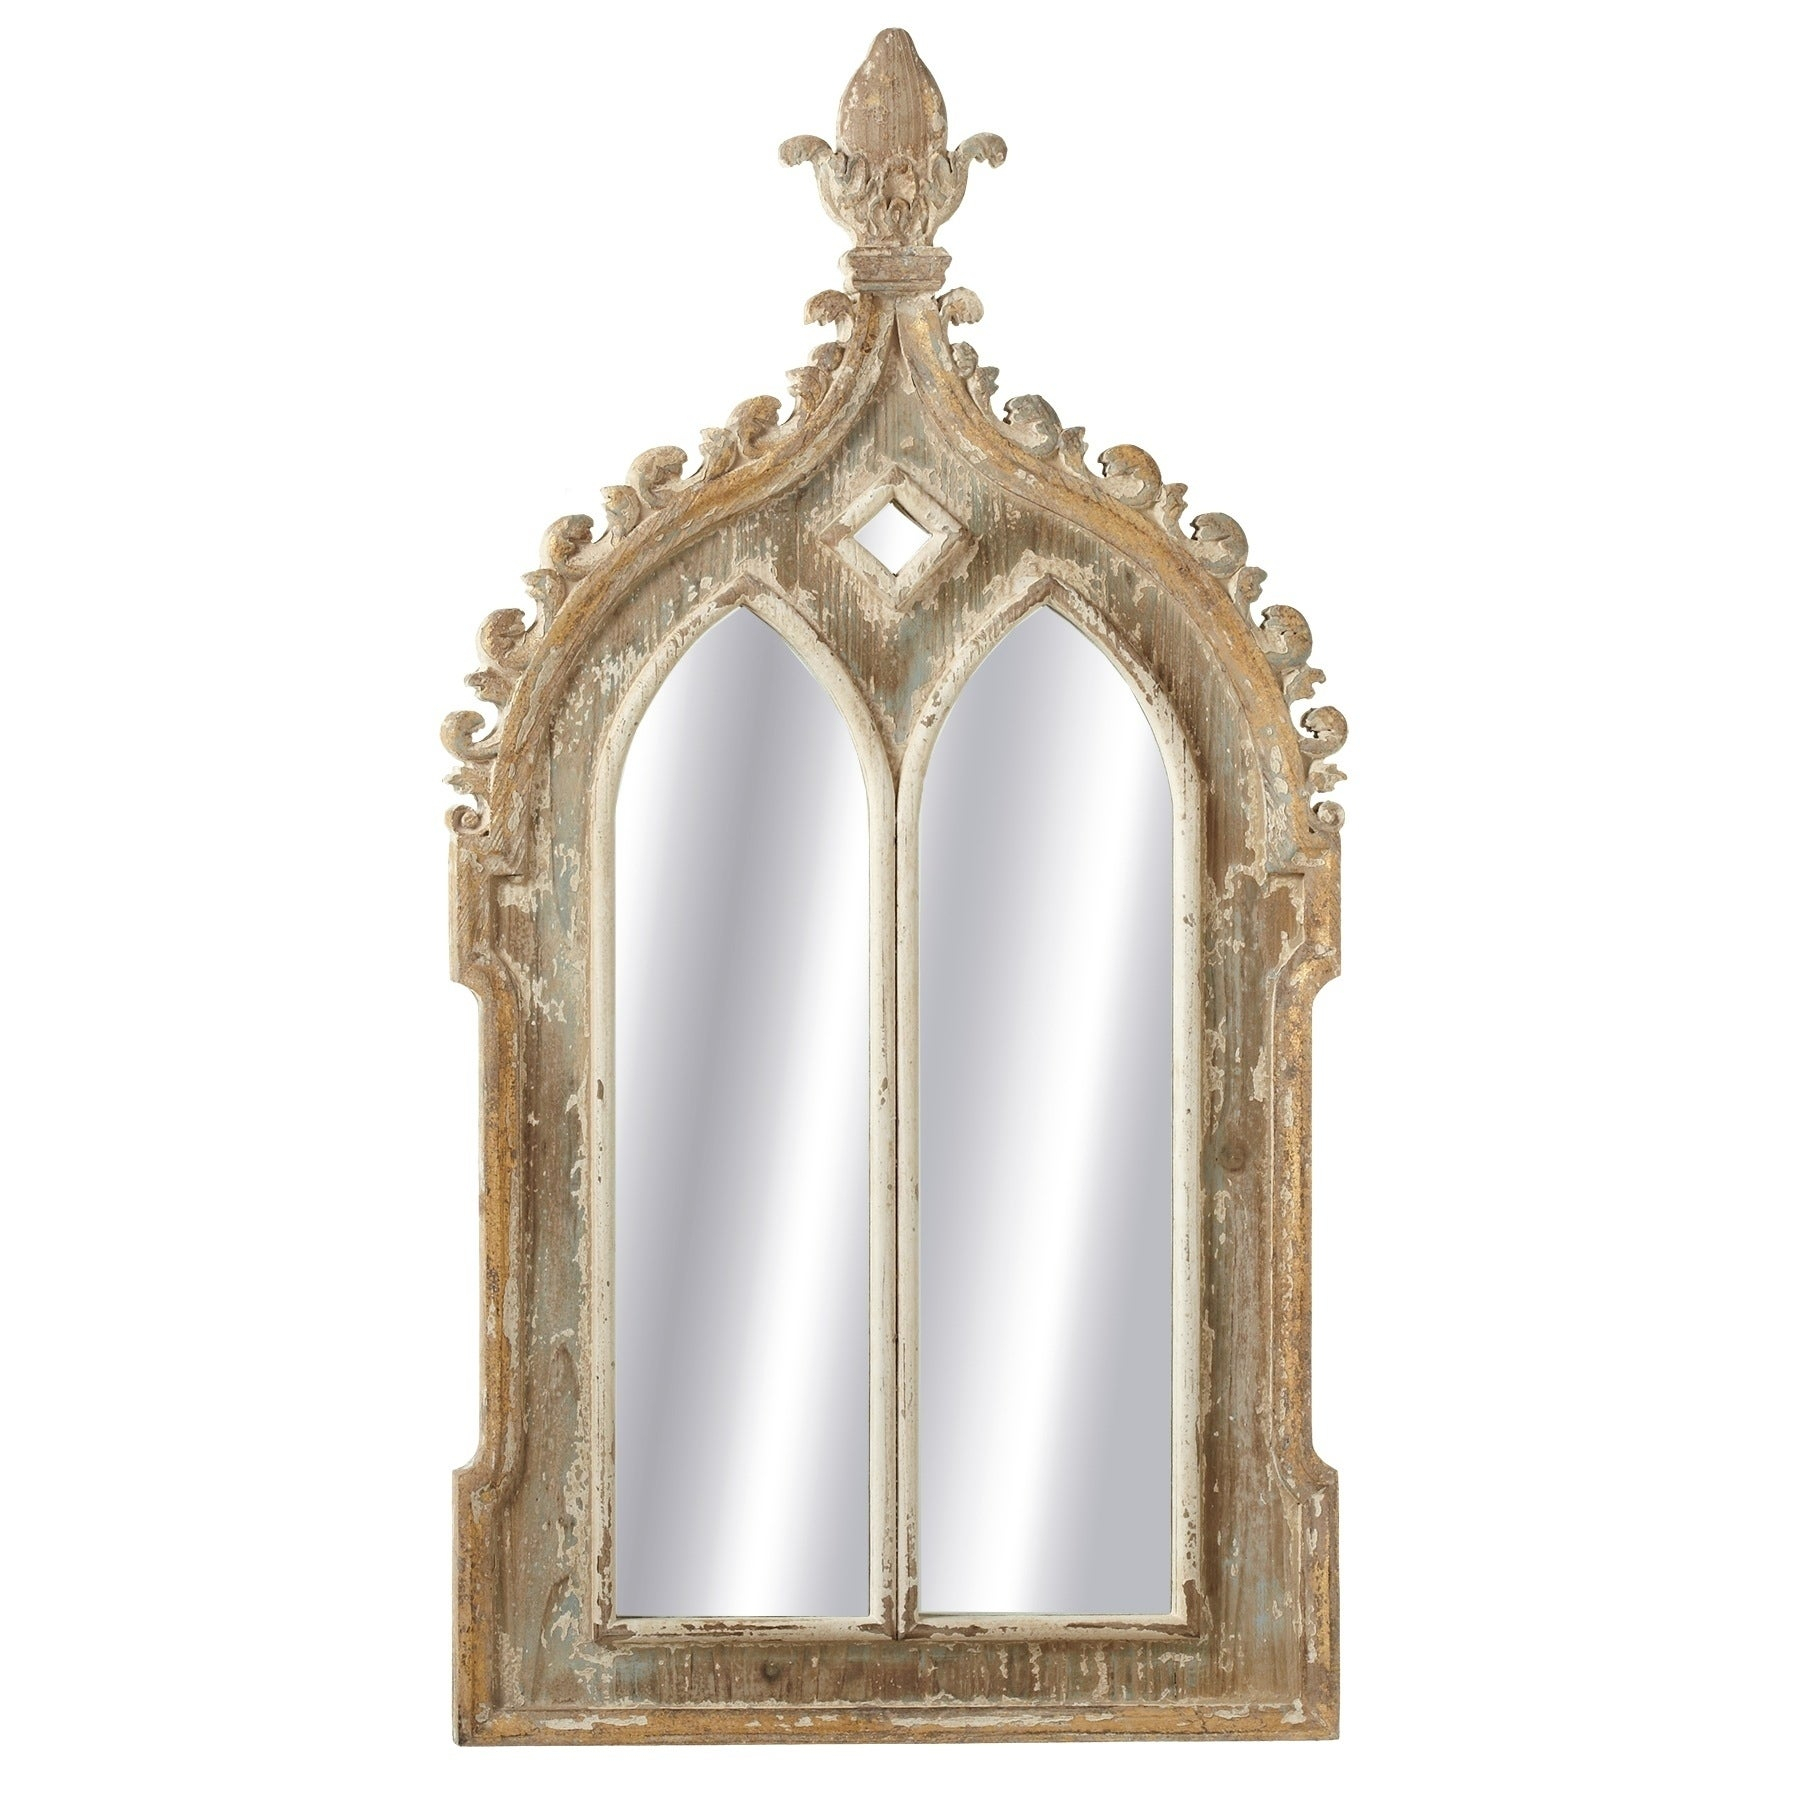 Midwest Cbk Gold Framed Double Arch Wall Mirror Regarding Gold Arch Wall Mirrors (View 21 of 30)